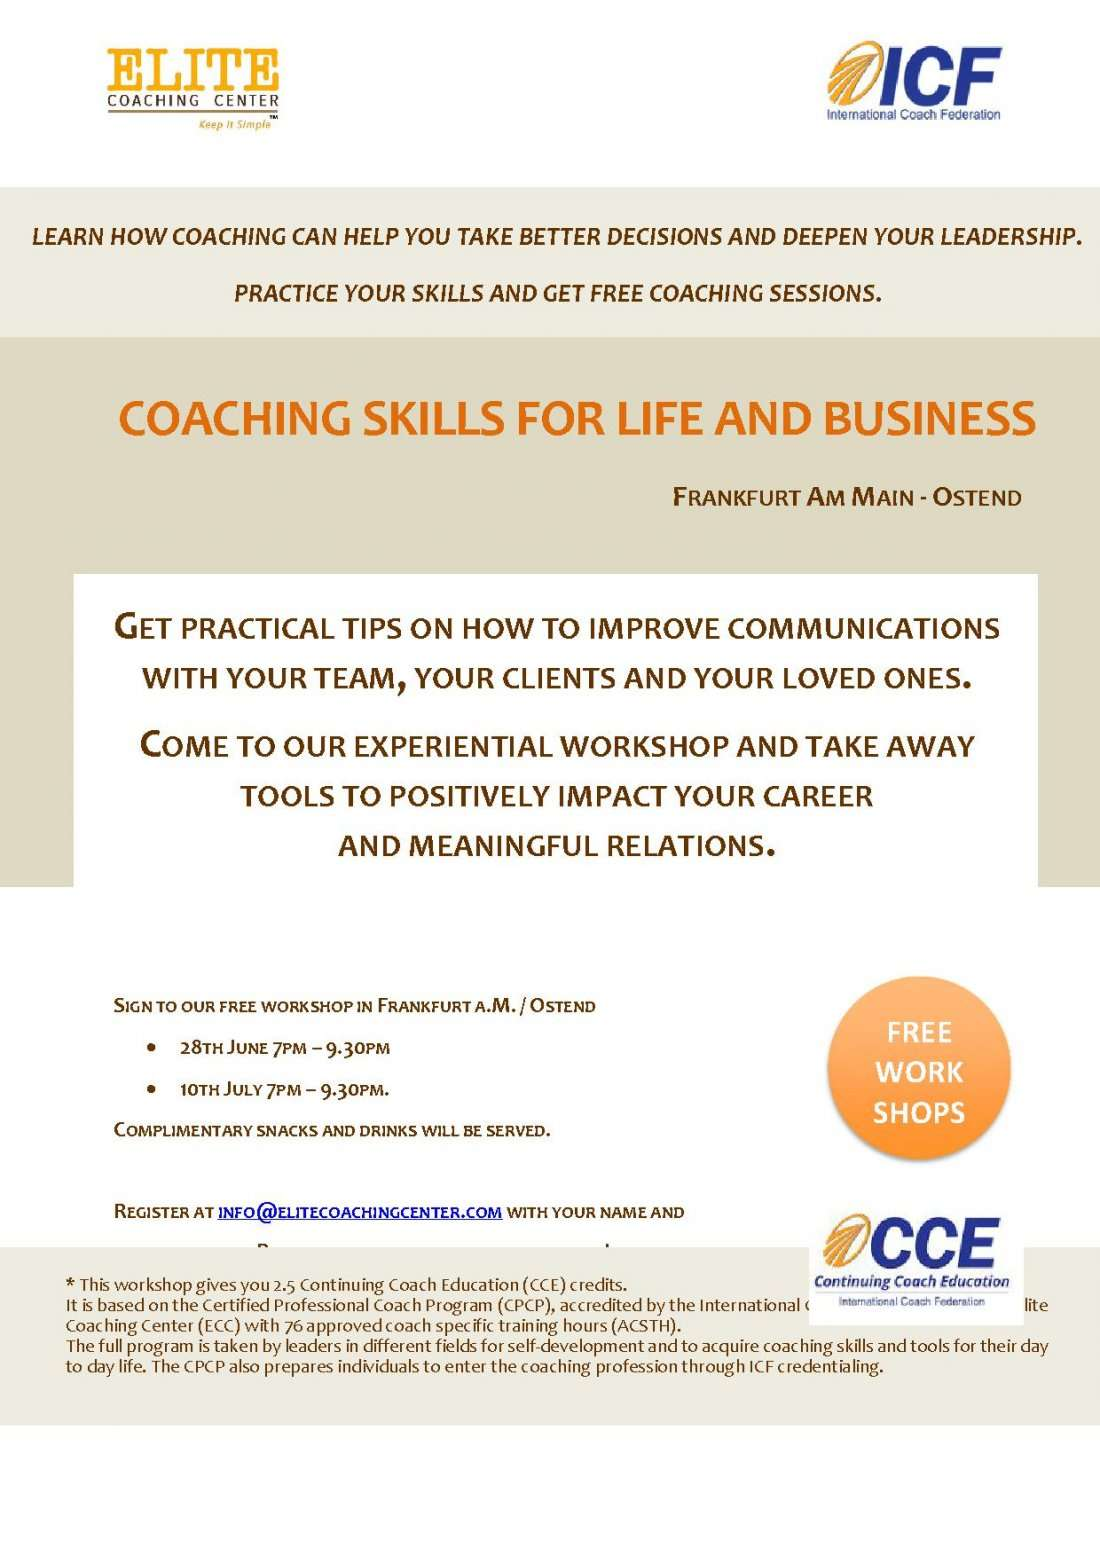 Coaching skills for life and business